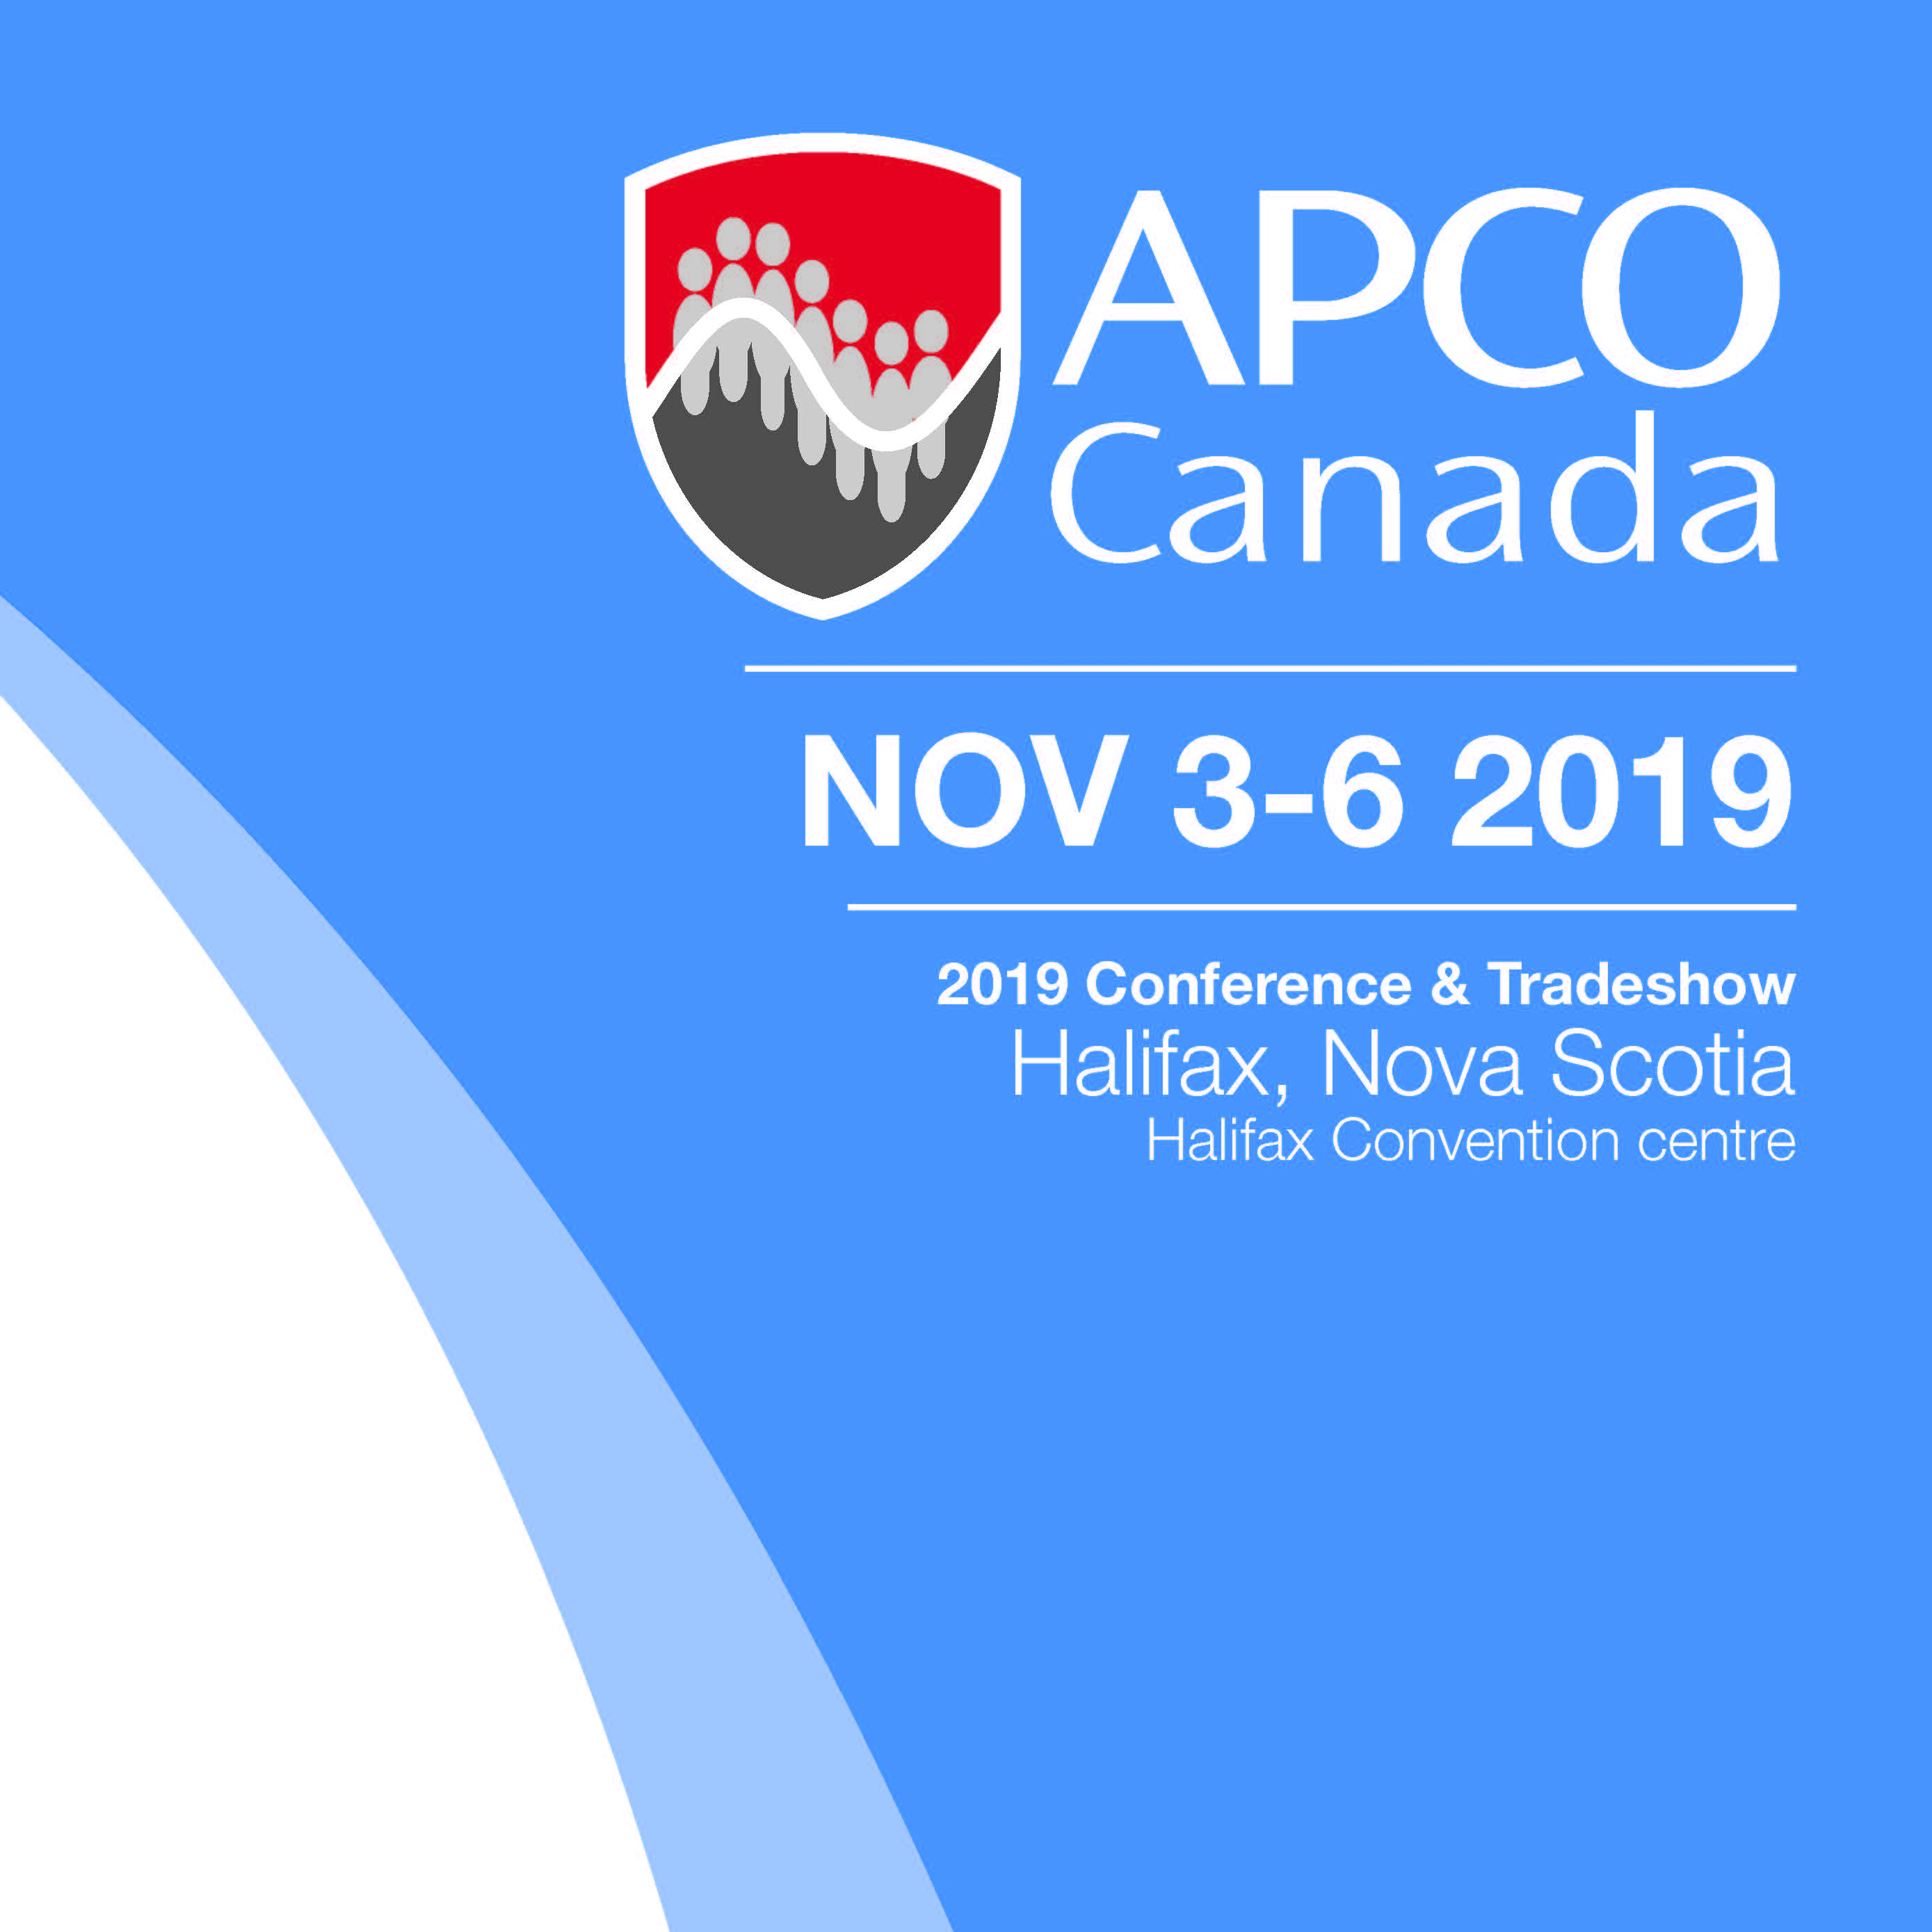 APCO-2019_Instagram Post Nov2019.jpg